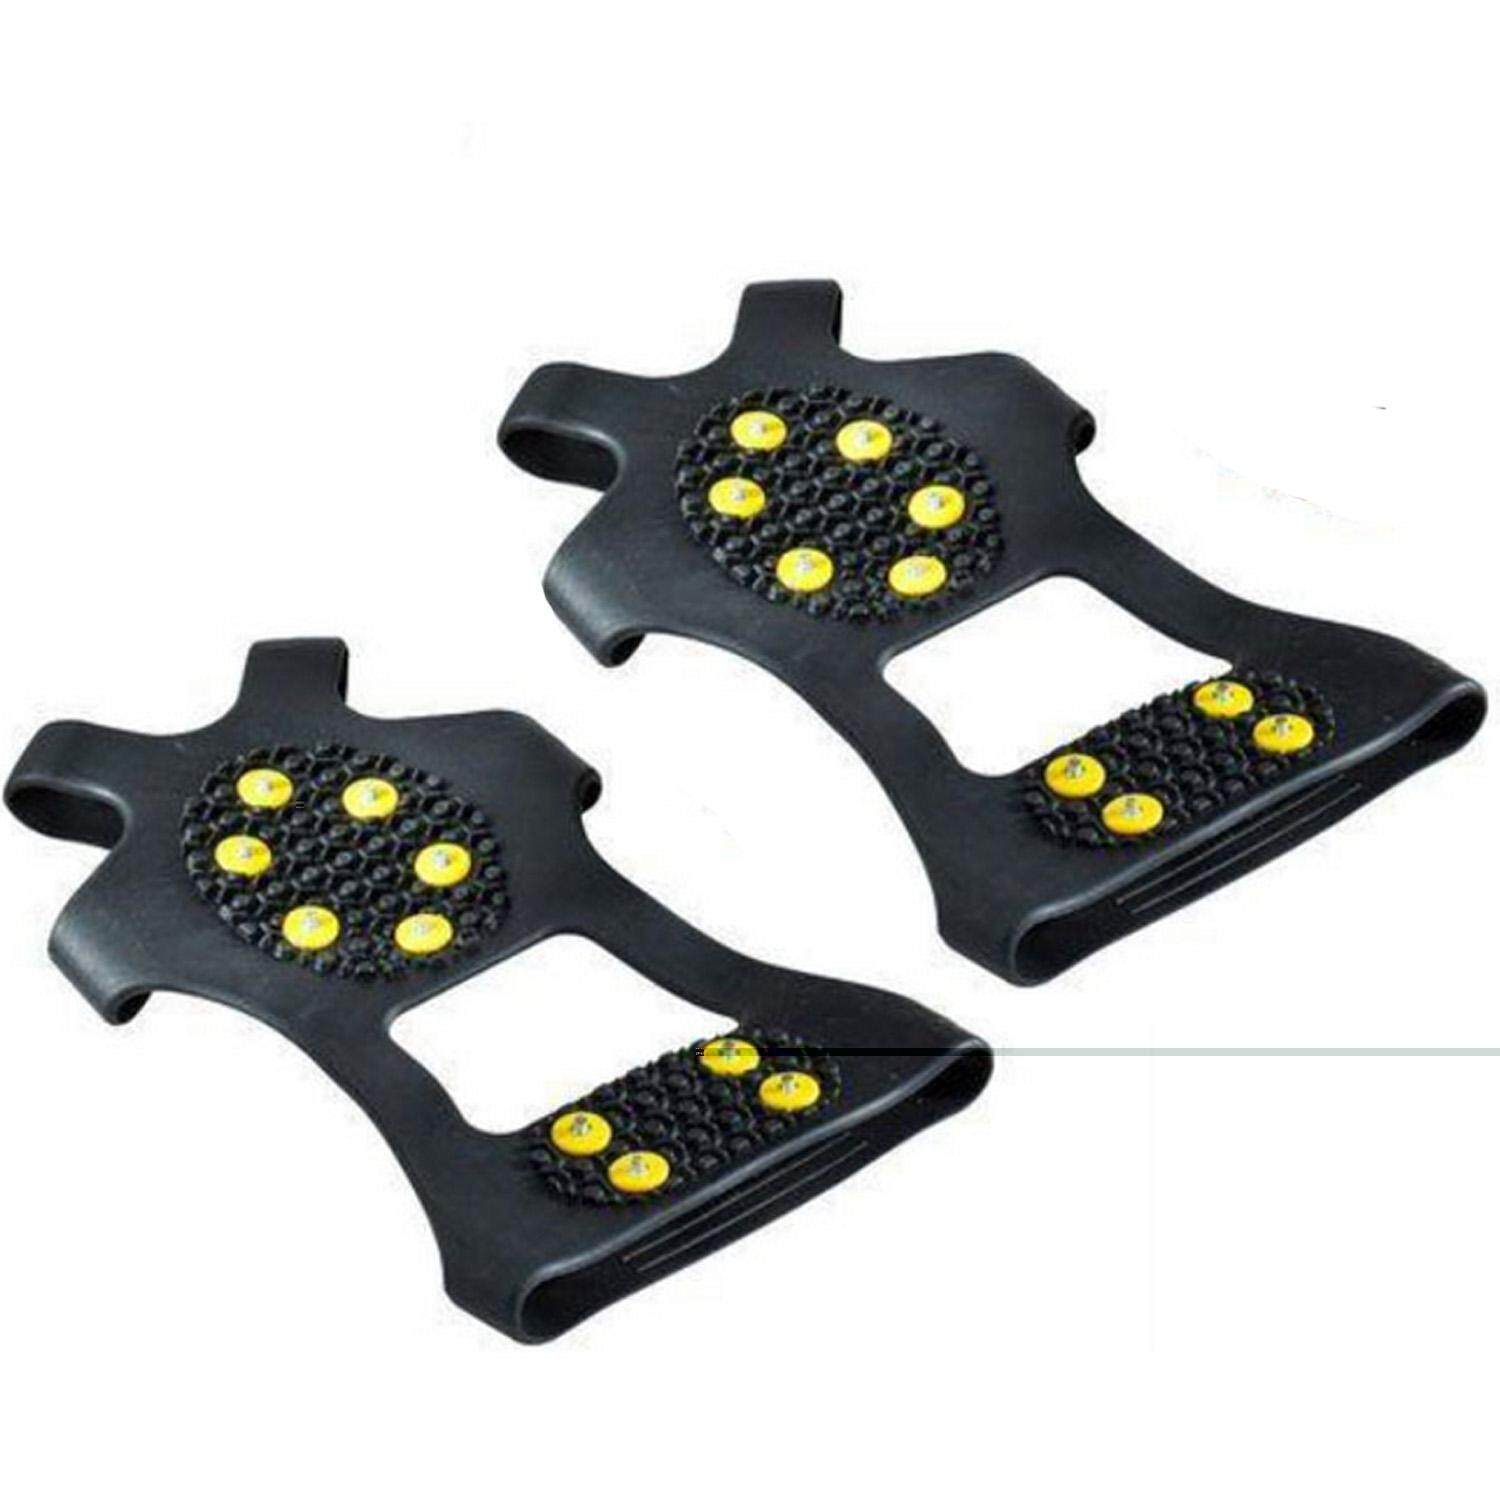 10-Stud Universal Ice Snow Cleat Grips Traction Nonskid Over Shoe Boot Footwear Crampons Studs Spikes Size S By Elek.